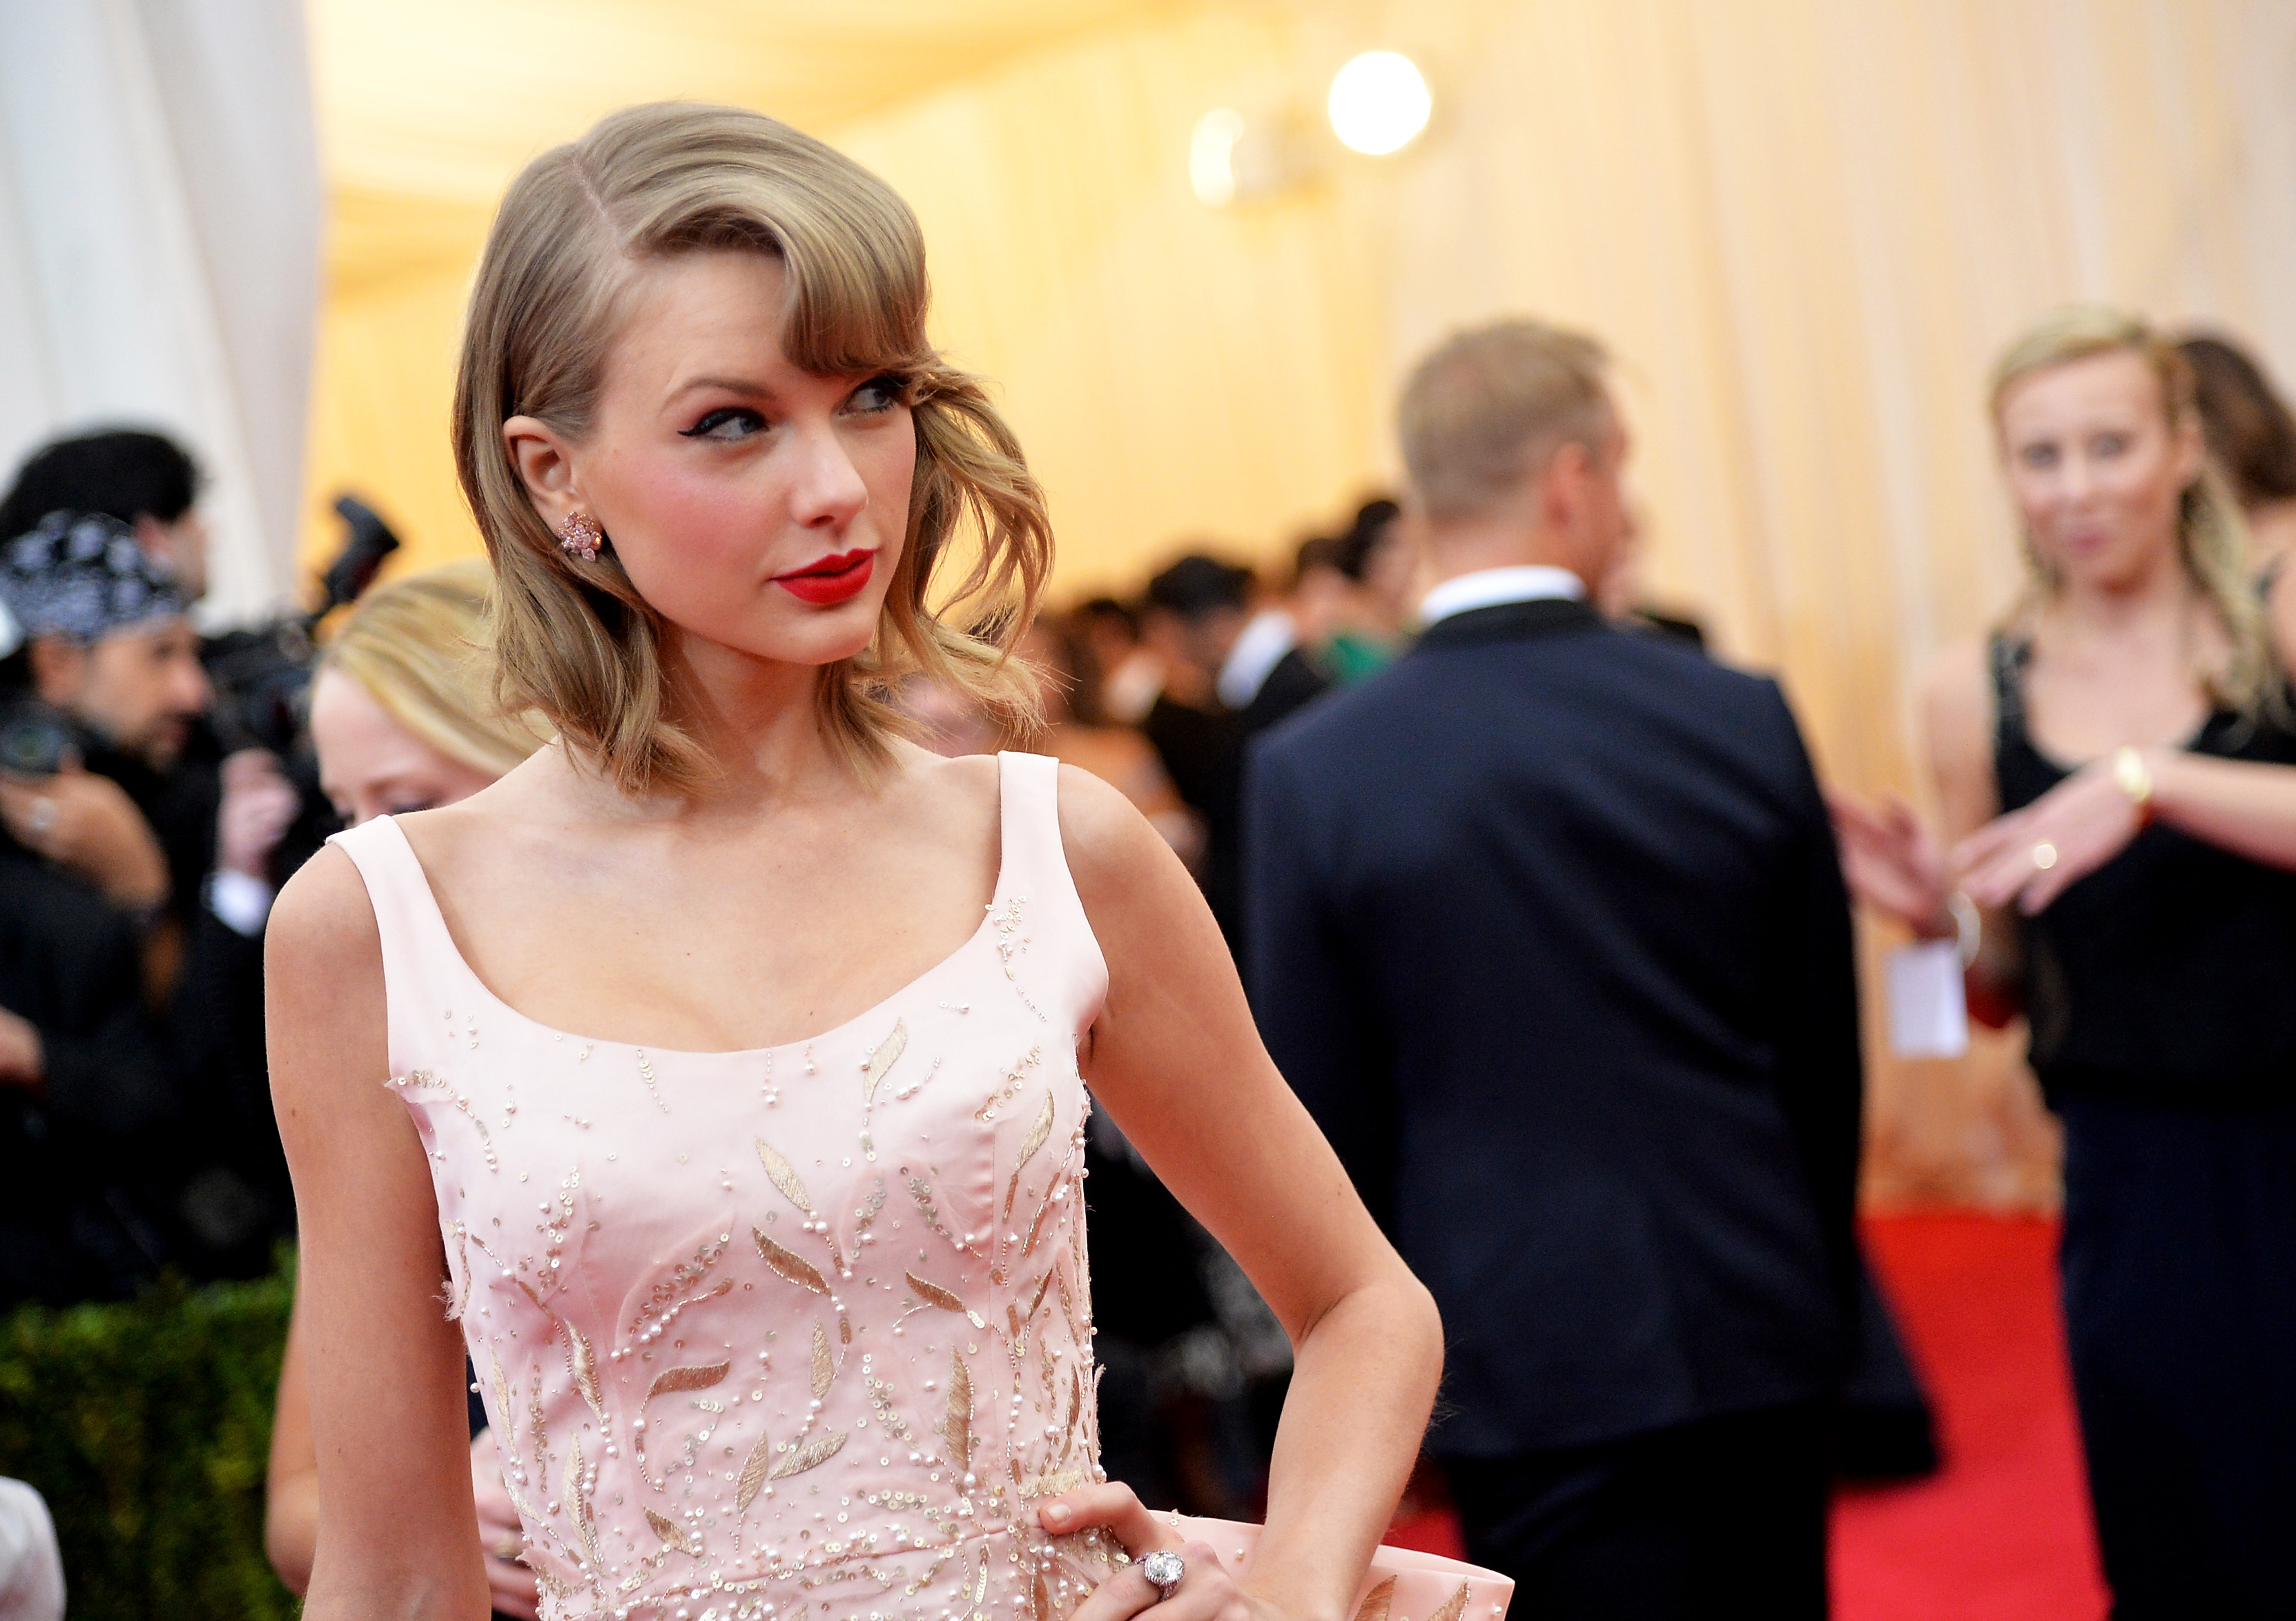 Musician Taylor Swift attends the  Charles James: Beyond Fashion  Costume Institute Gala at the Metropolitan Museum of Art on May 5, 2014 in New York City.